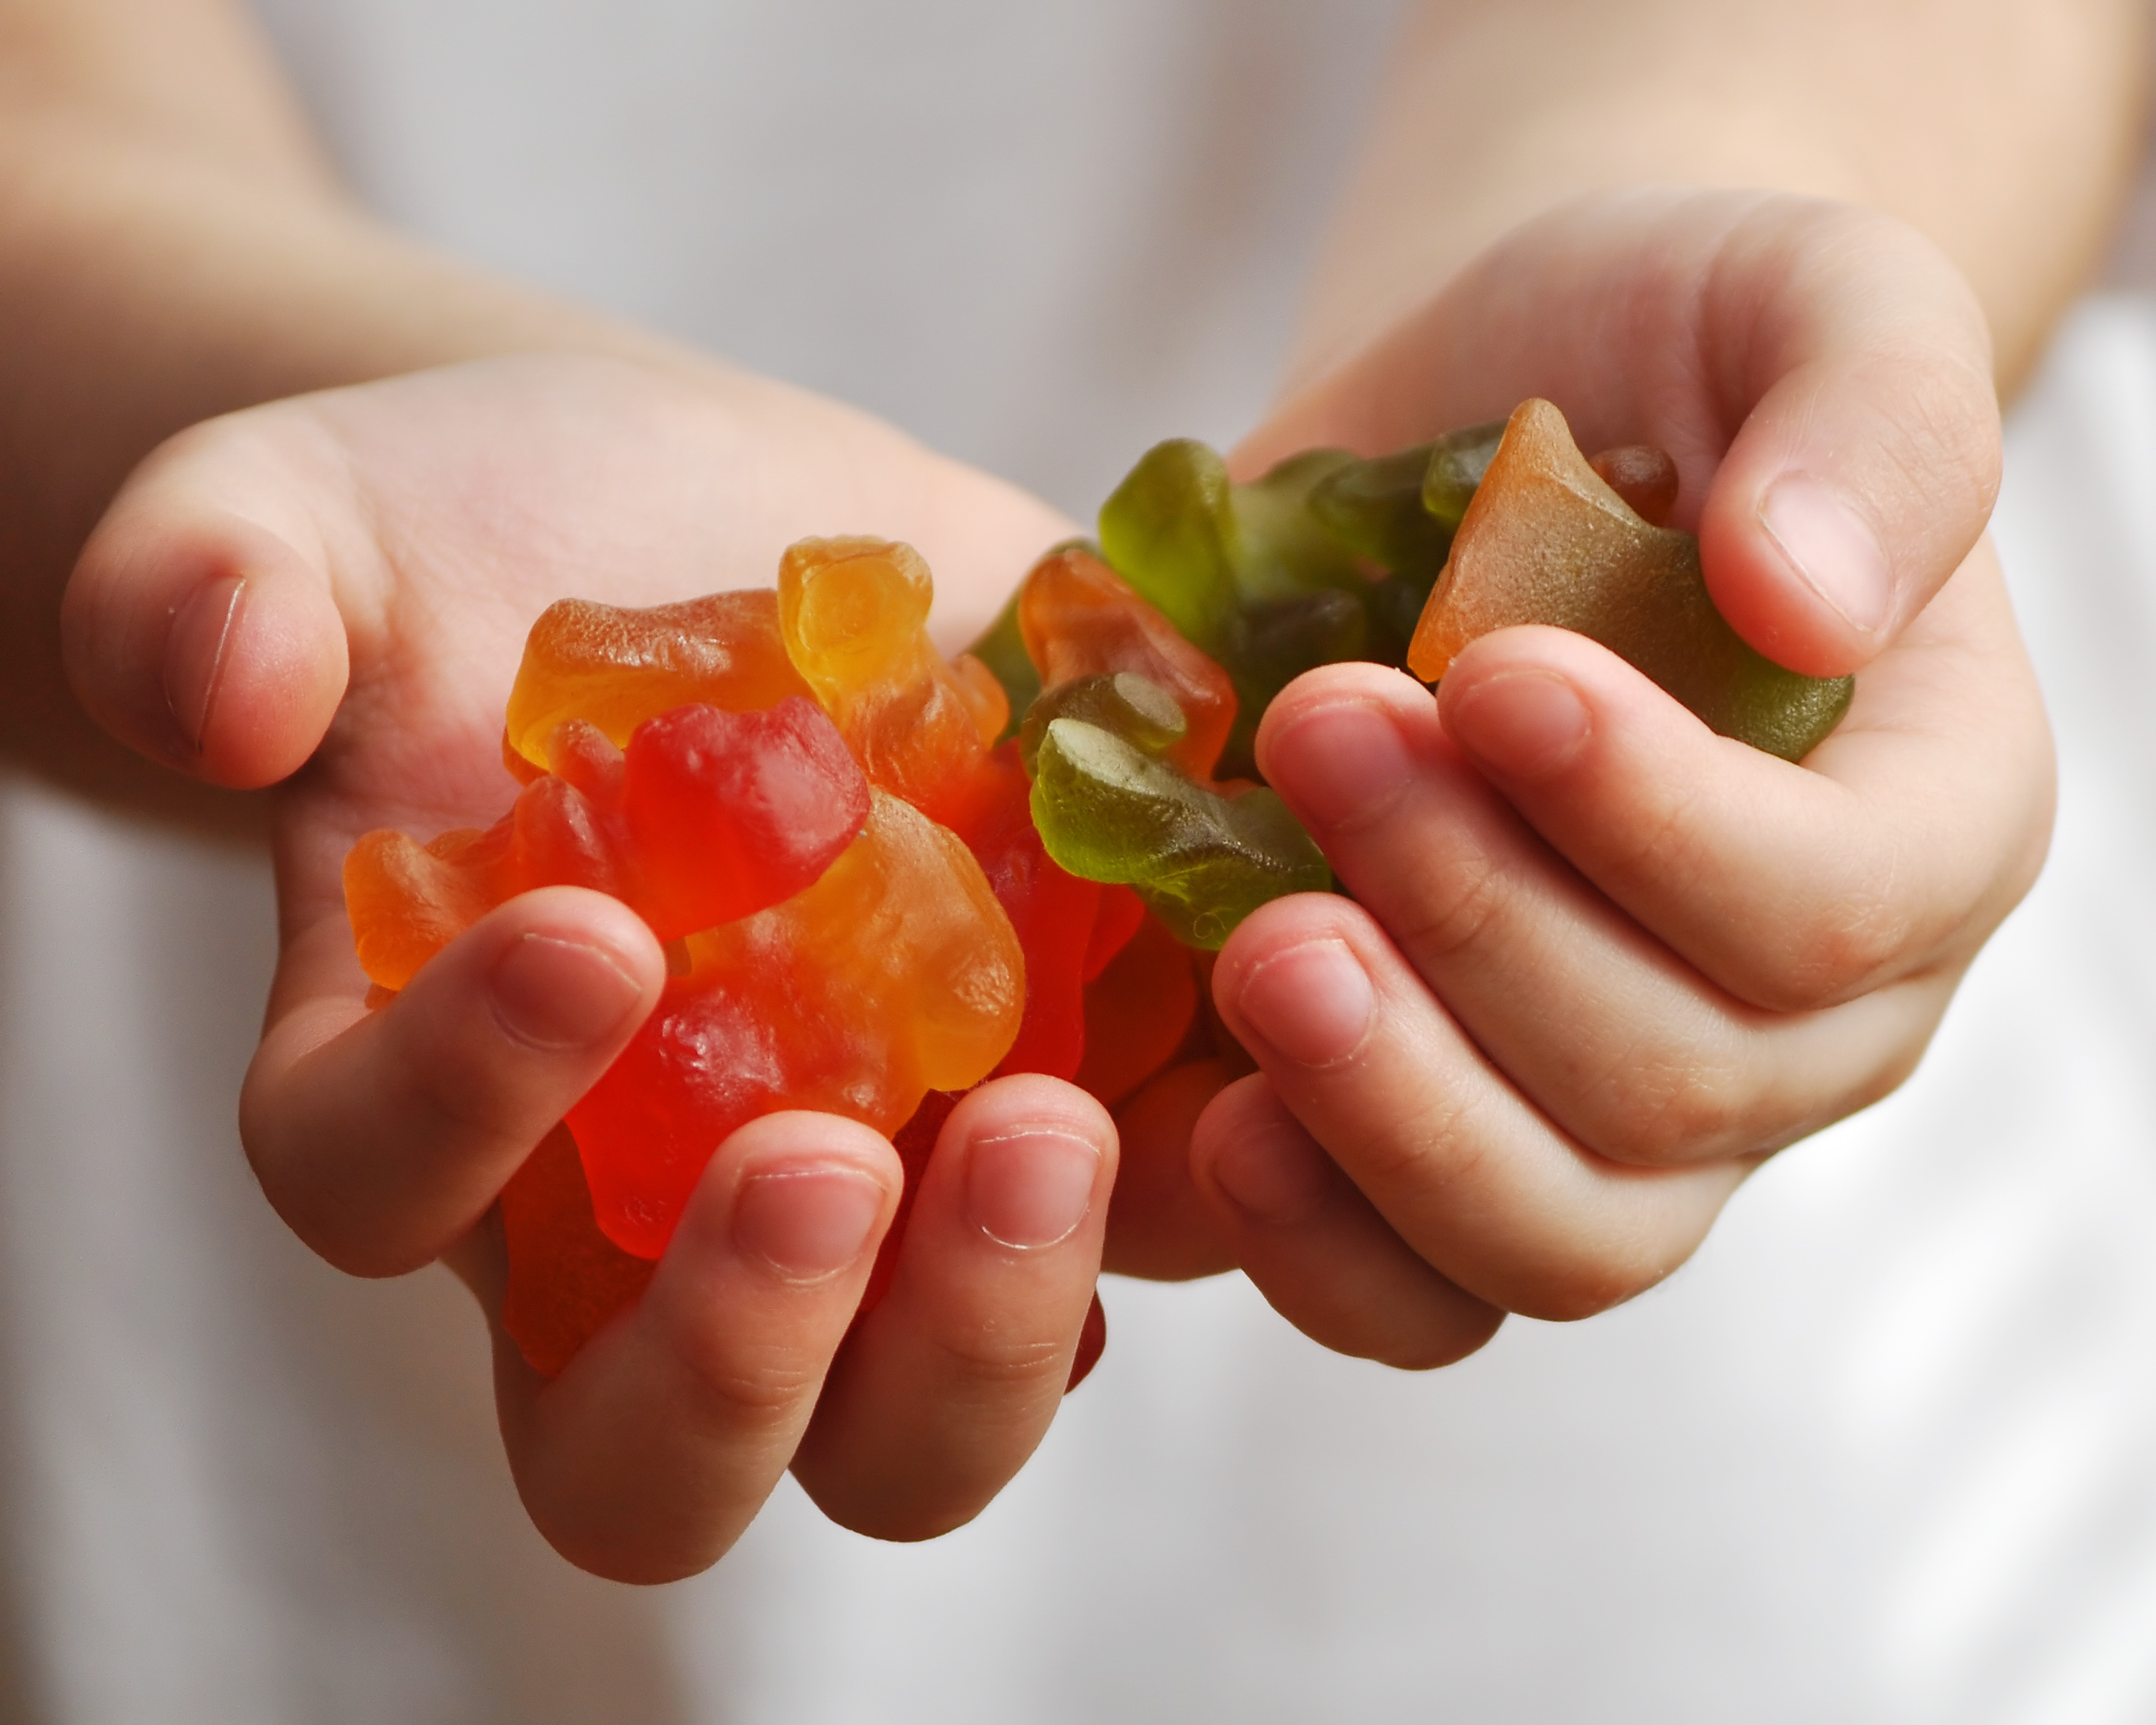 Gummy candies in child hands: Children's hands hold a lot of